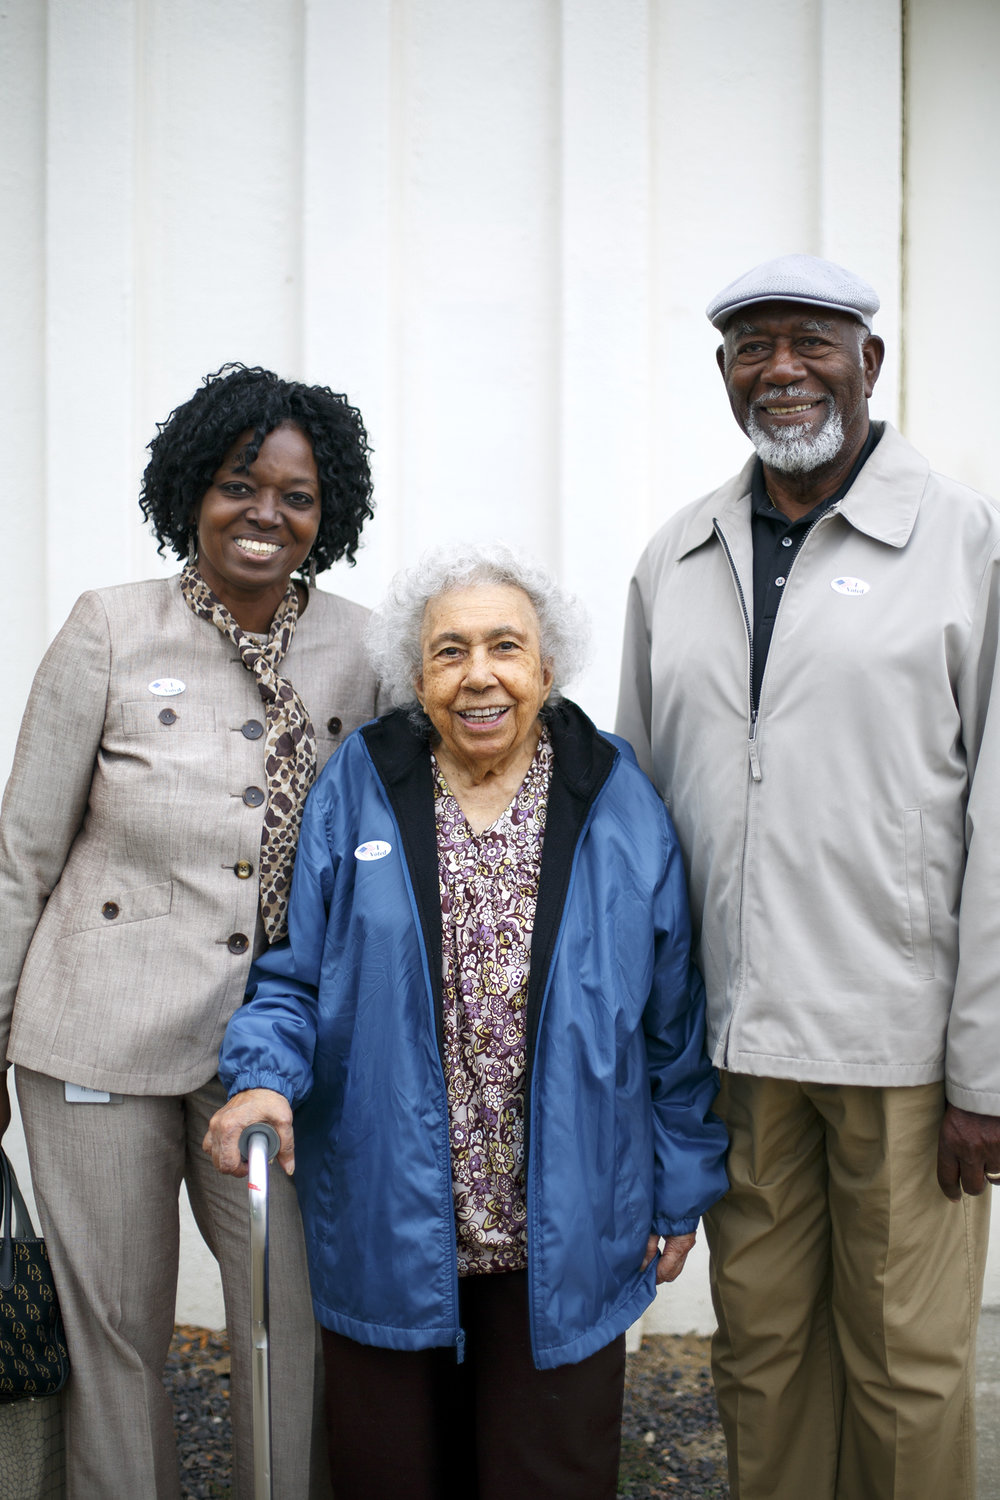 Tina Lathan, left, and her parents Dorothy and James Nixon, 2:43 p.m., Eisenhower Pool